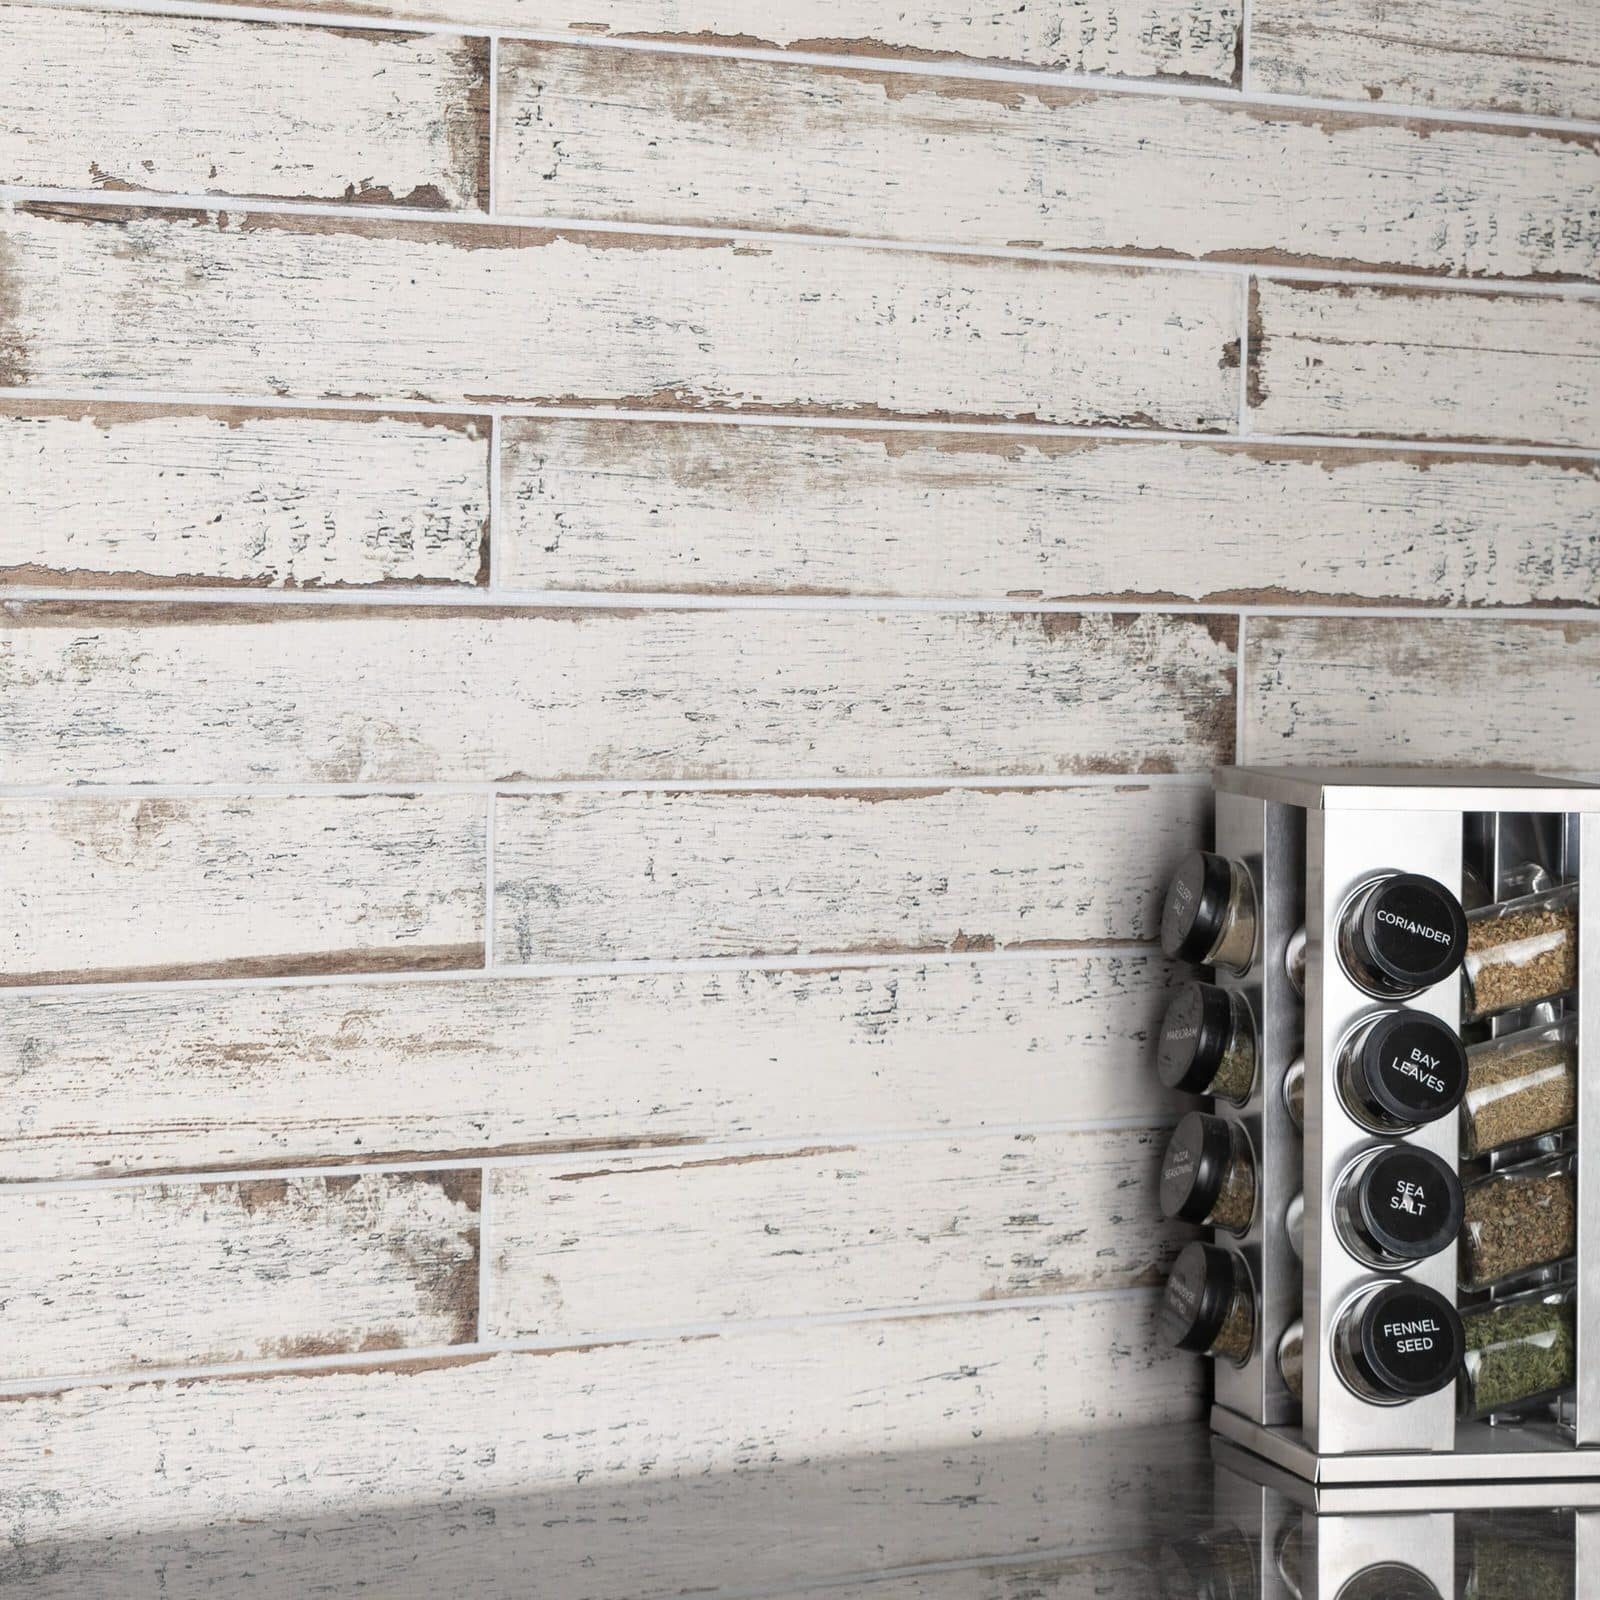 Wood-Inspired Tiles to Bring your Kitchen to the Beach